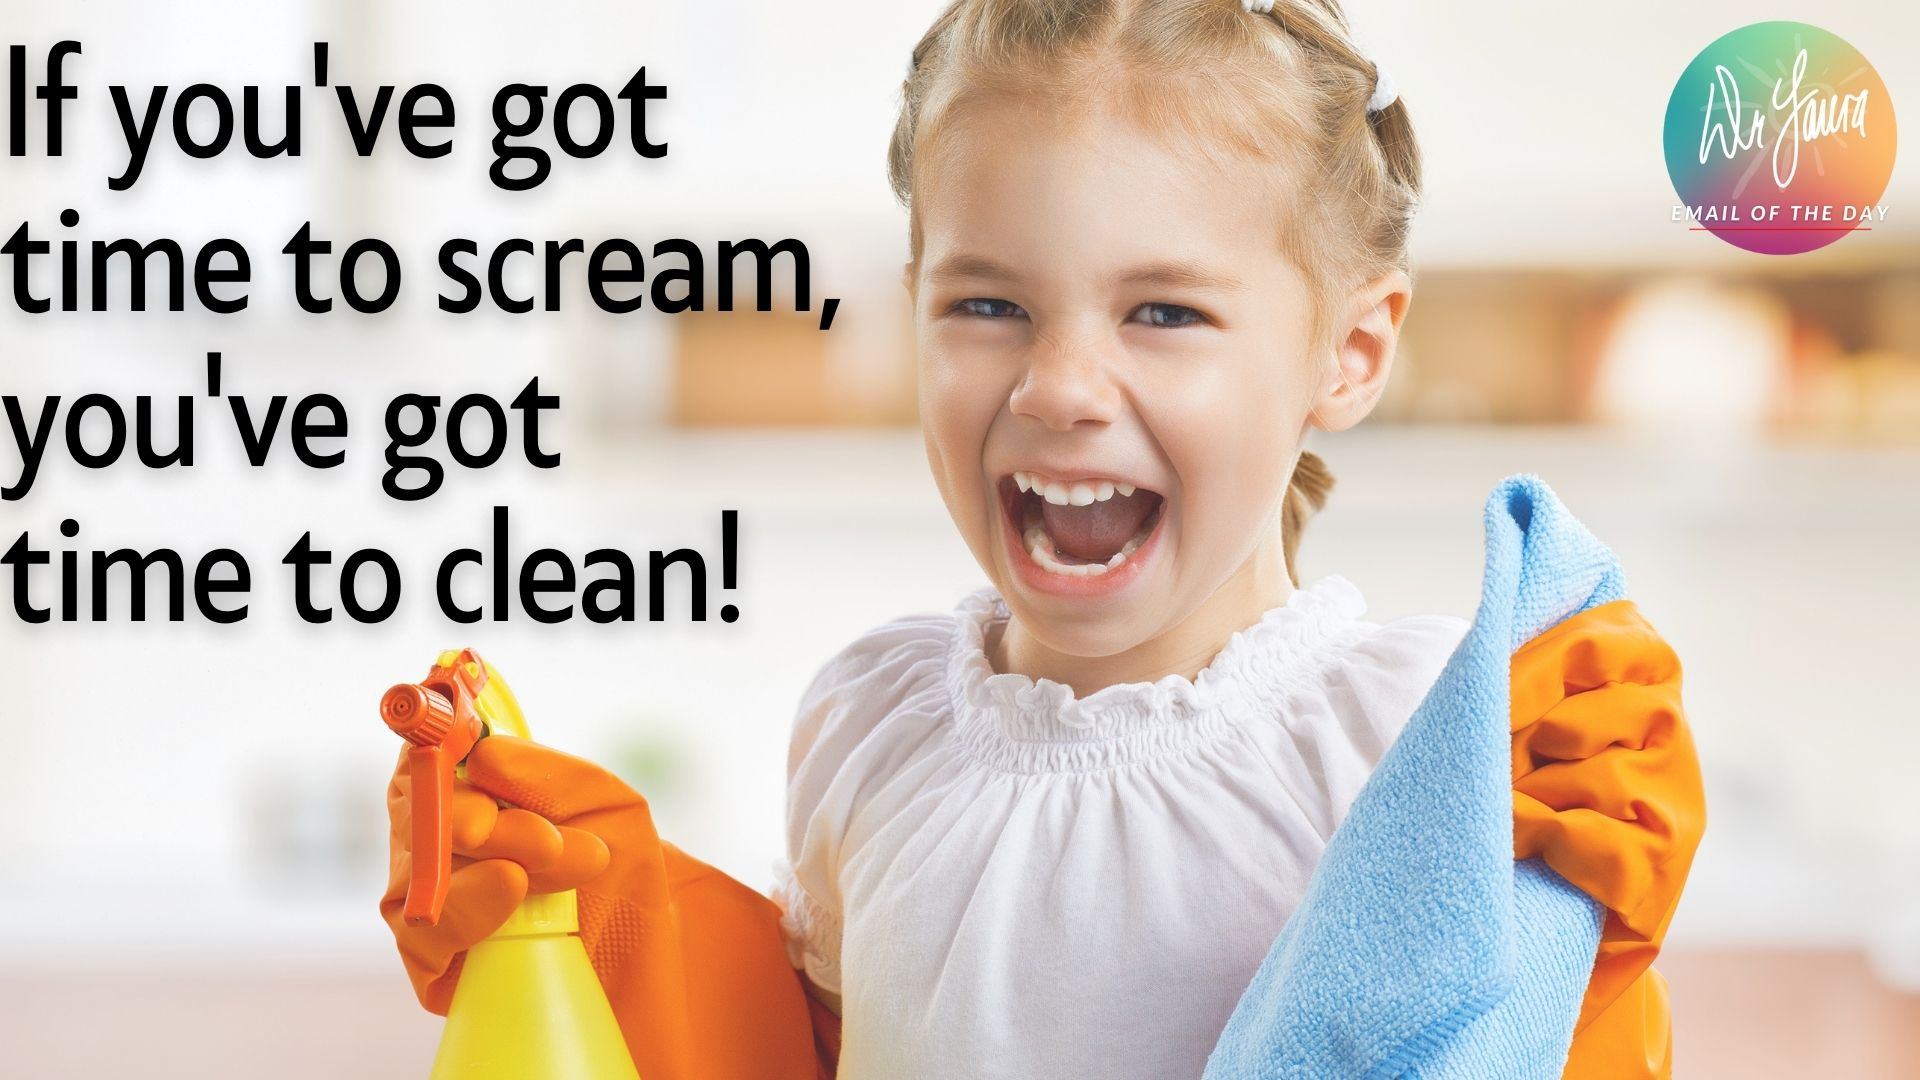 Email of the Day: What I Do When My Kids Start Screaming